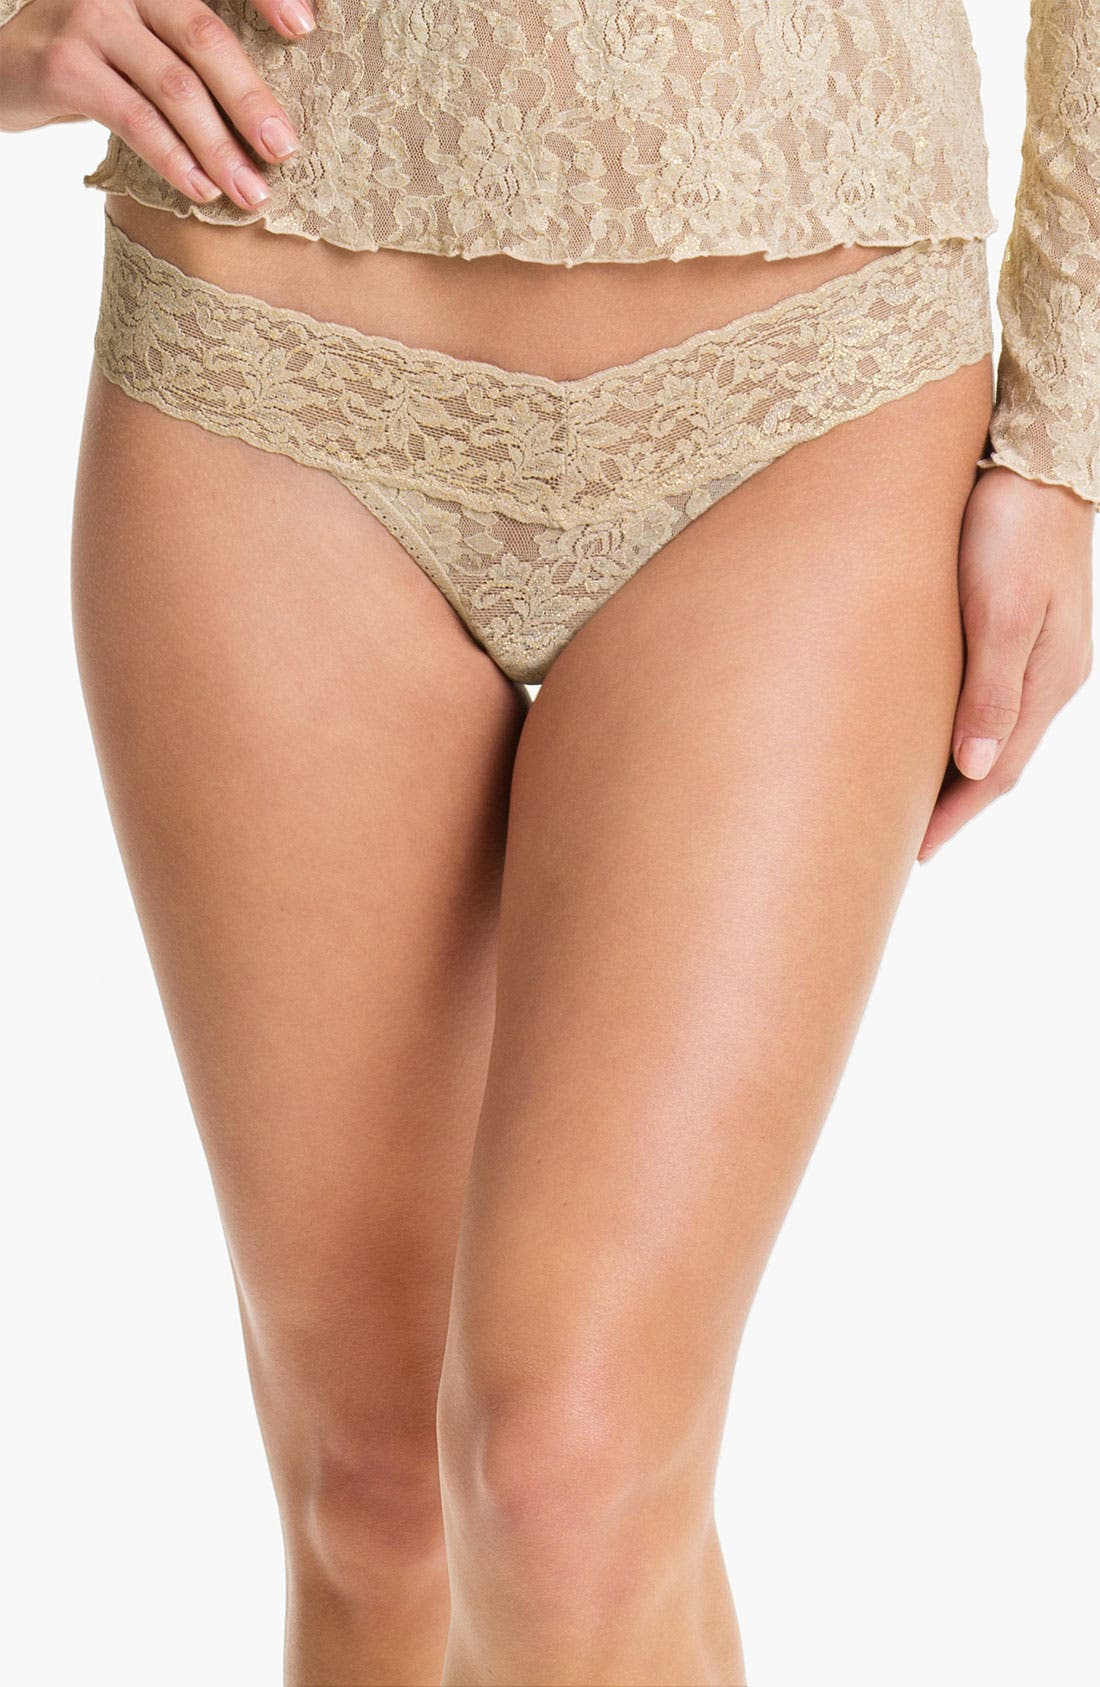 Alternate Image 1 Selected - Hanky Panky Metallic Signature Lace Low Rise Thong